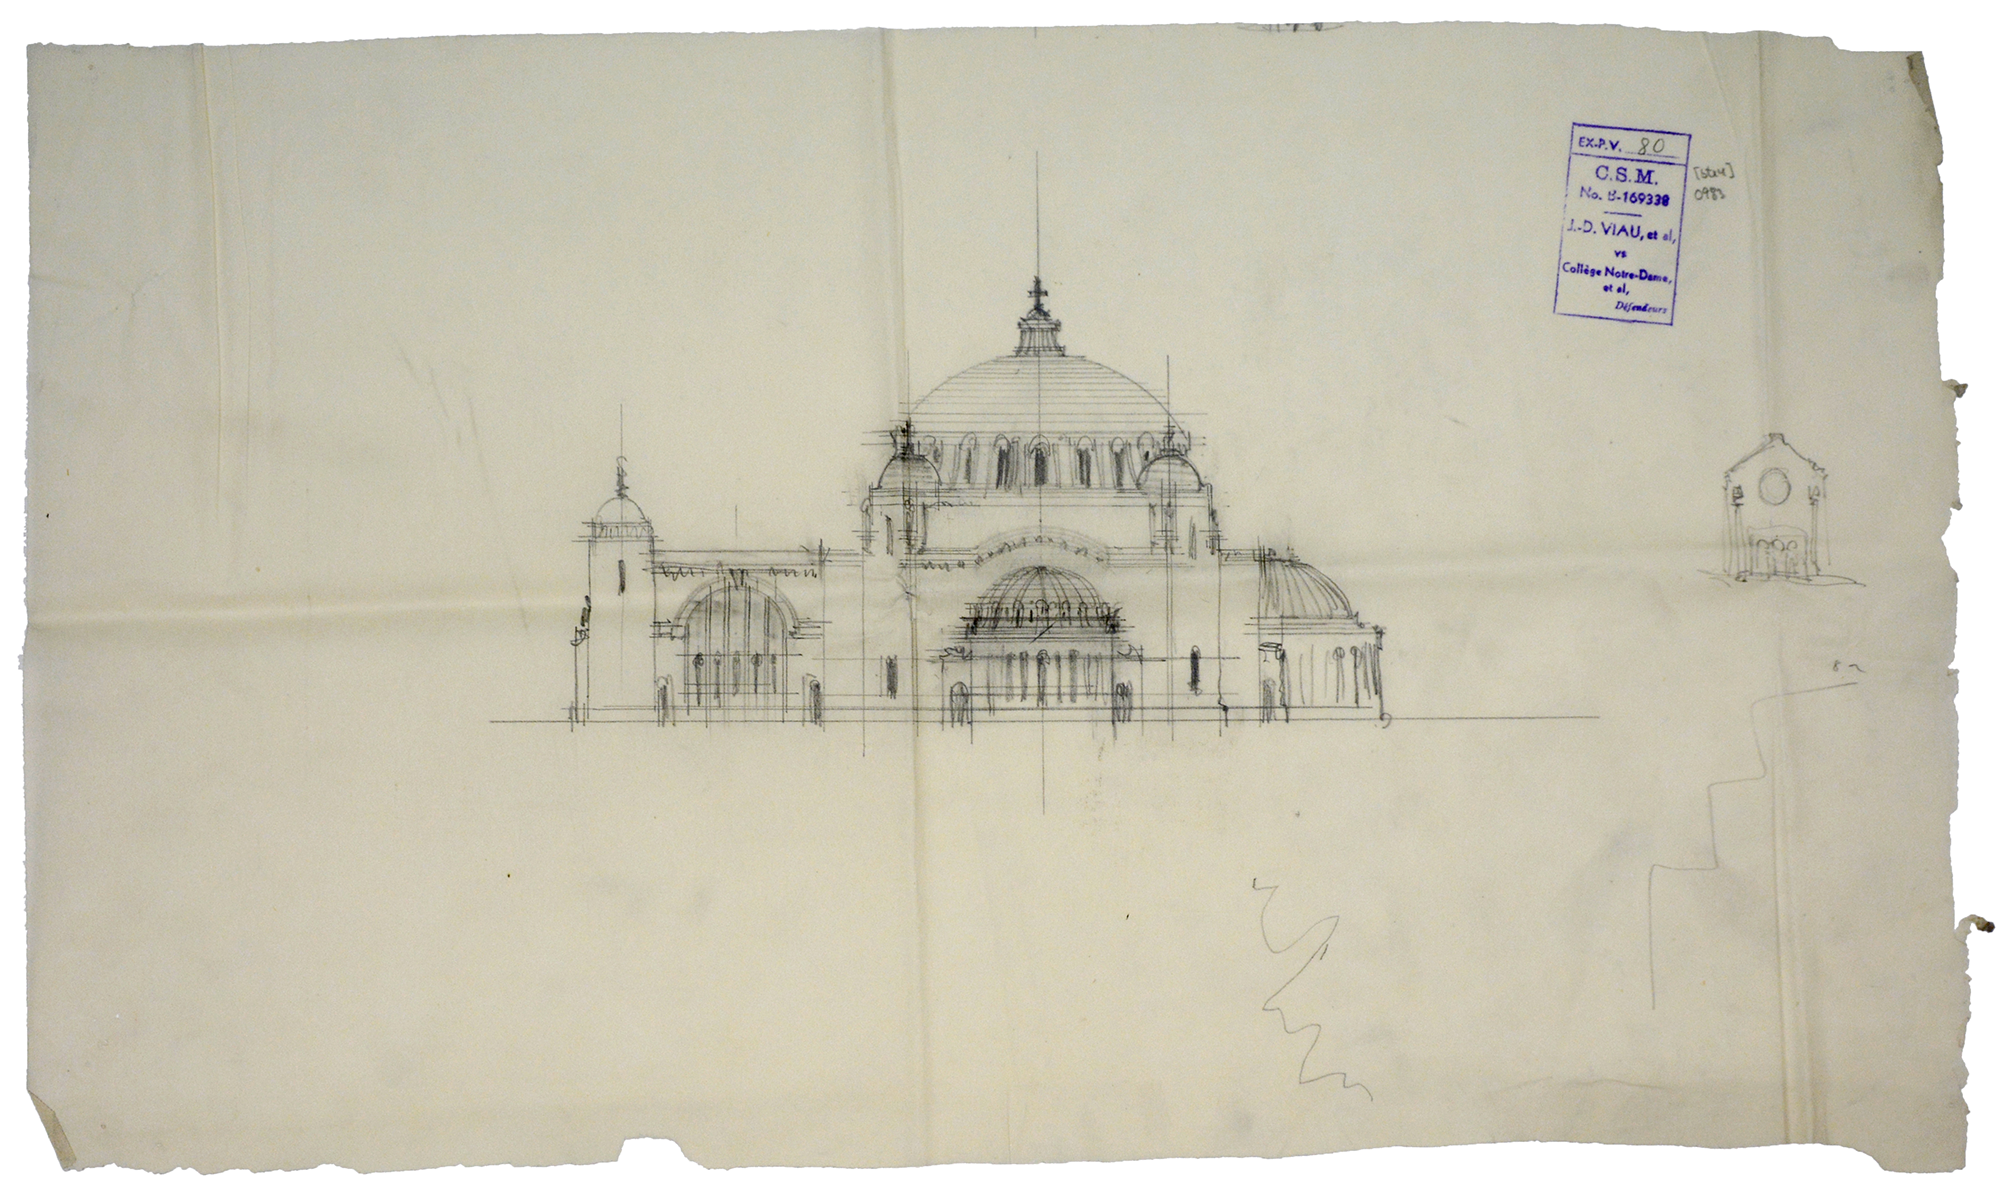 La basilique imaginaire - La crypte - document no 0983